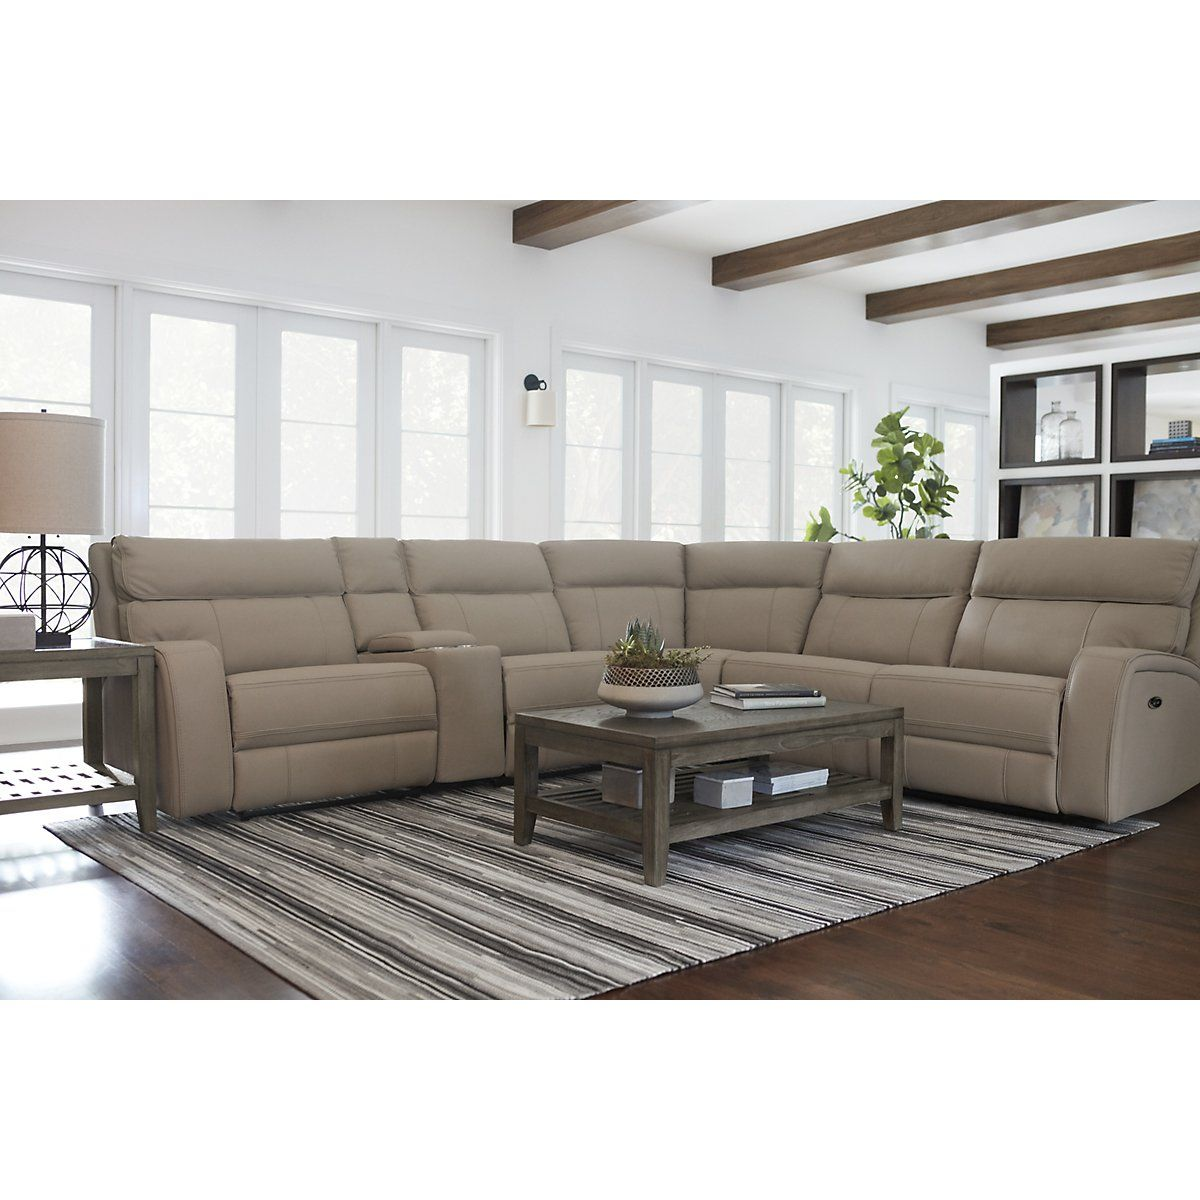 Rhett Taupe Micro Small Two Arm Power Reclining Sectional Living Room Reclining Sectionals City Reclining Sectional Living Room Sectional Power Recliners #two #recliners #in #living #room